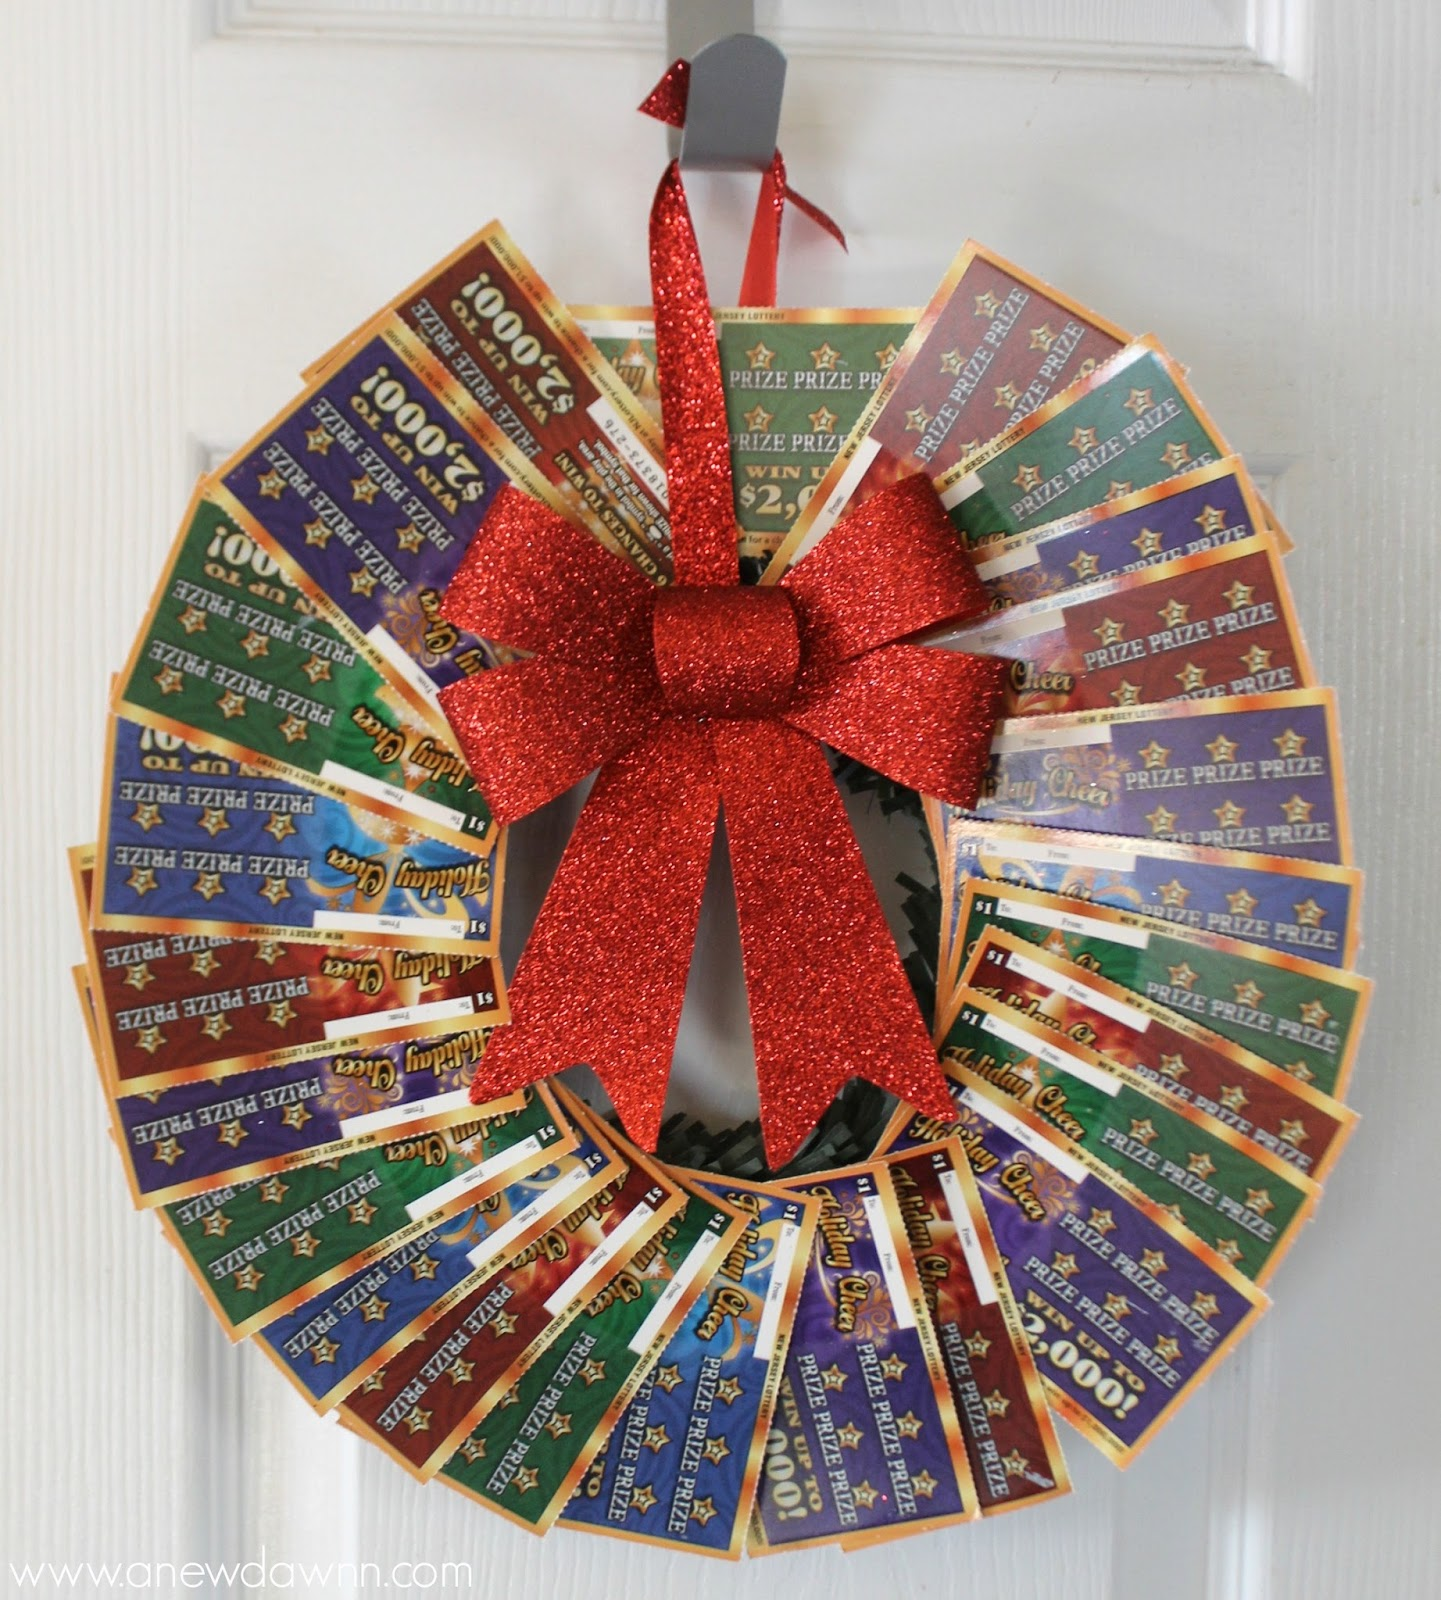 new jersey lottery holiday games diy gift ideas a new dawnn since i didn t want to just hand over a bunch of lottery tickets i had to get creative i wanted to make it fun and festive gift